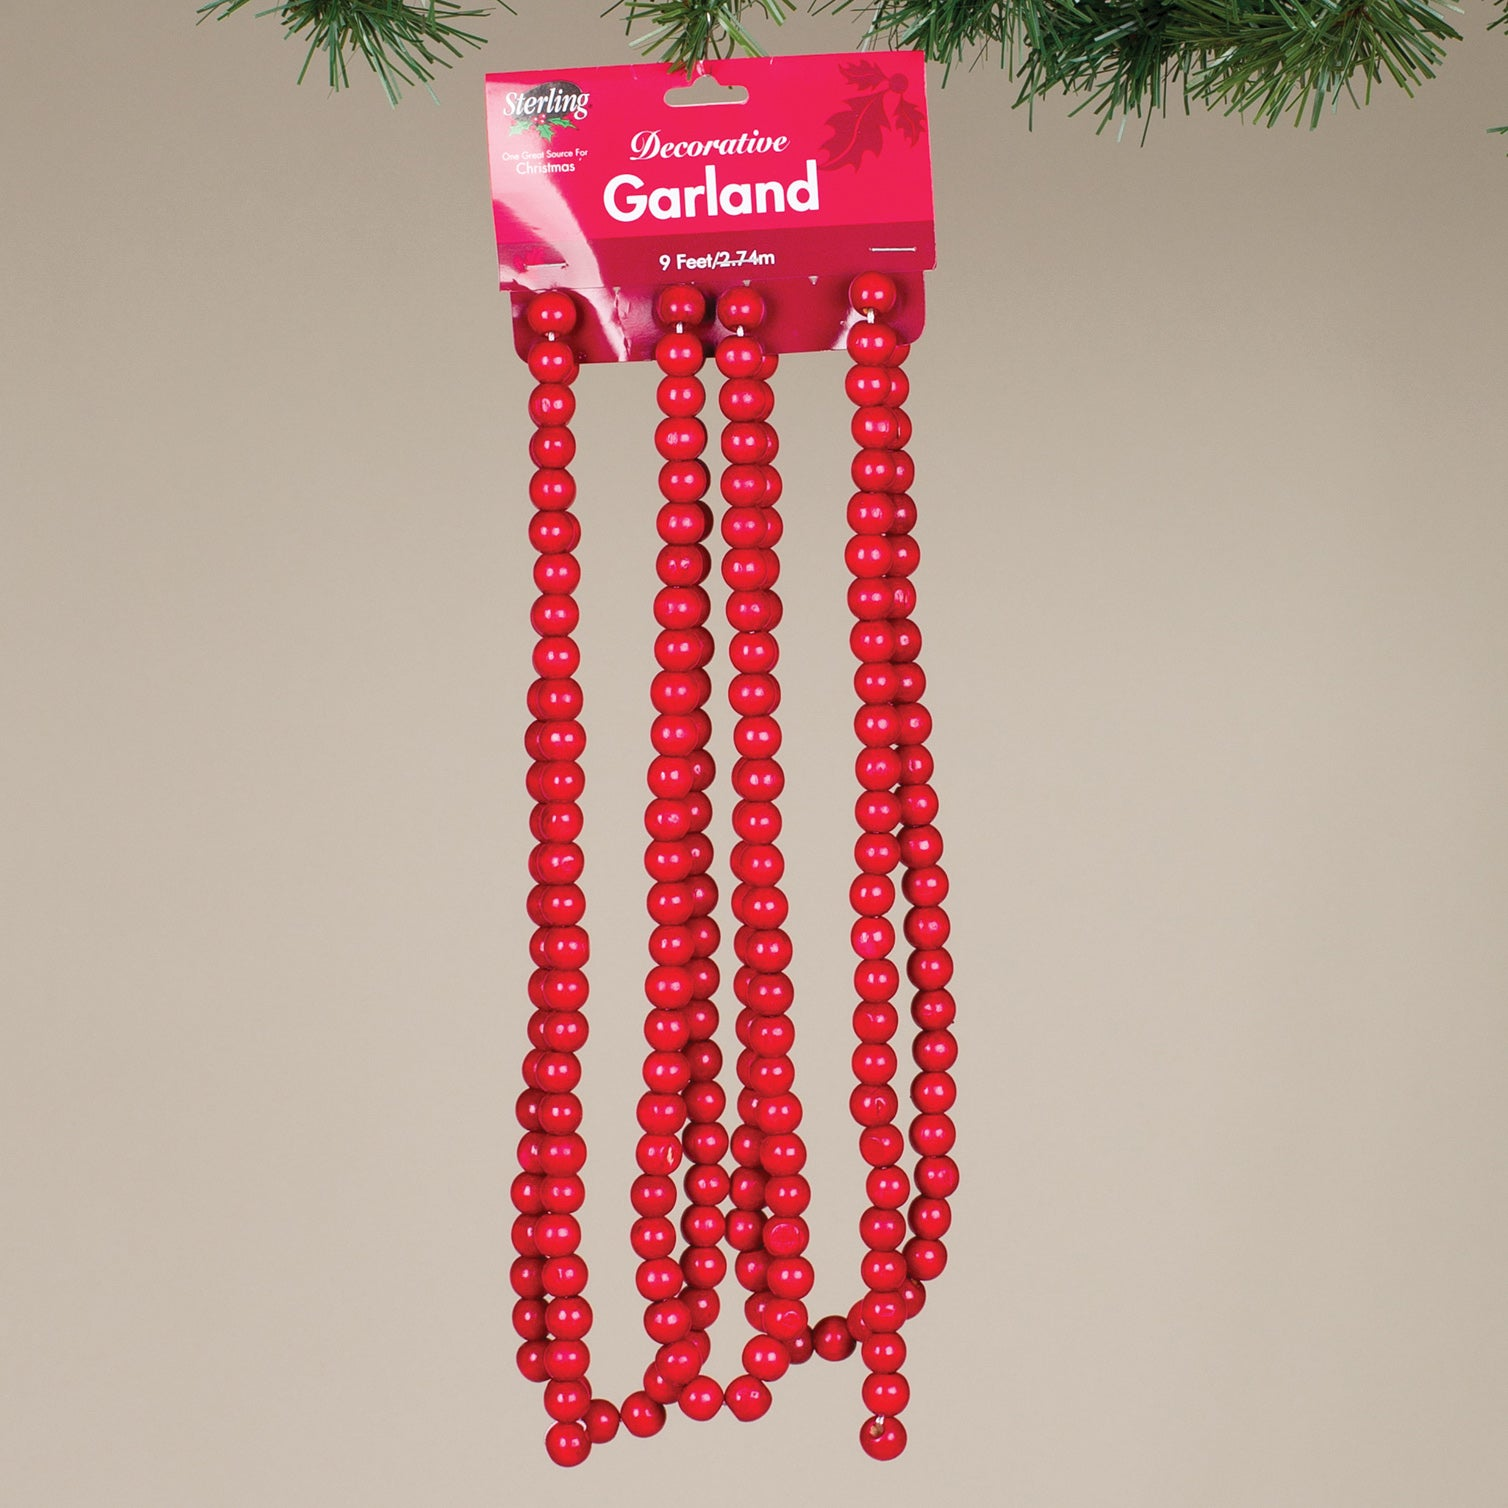 9 L 14mm Red Wood Bead Garland Kc Collections